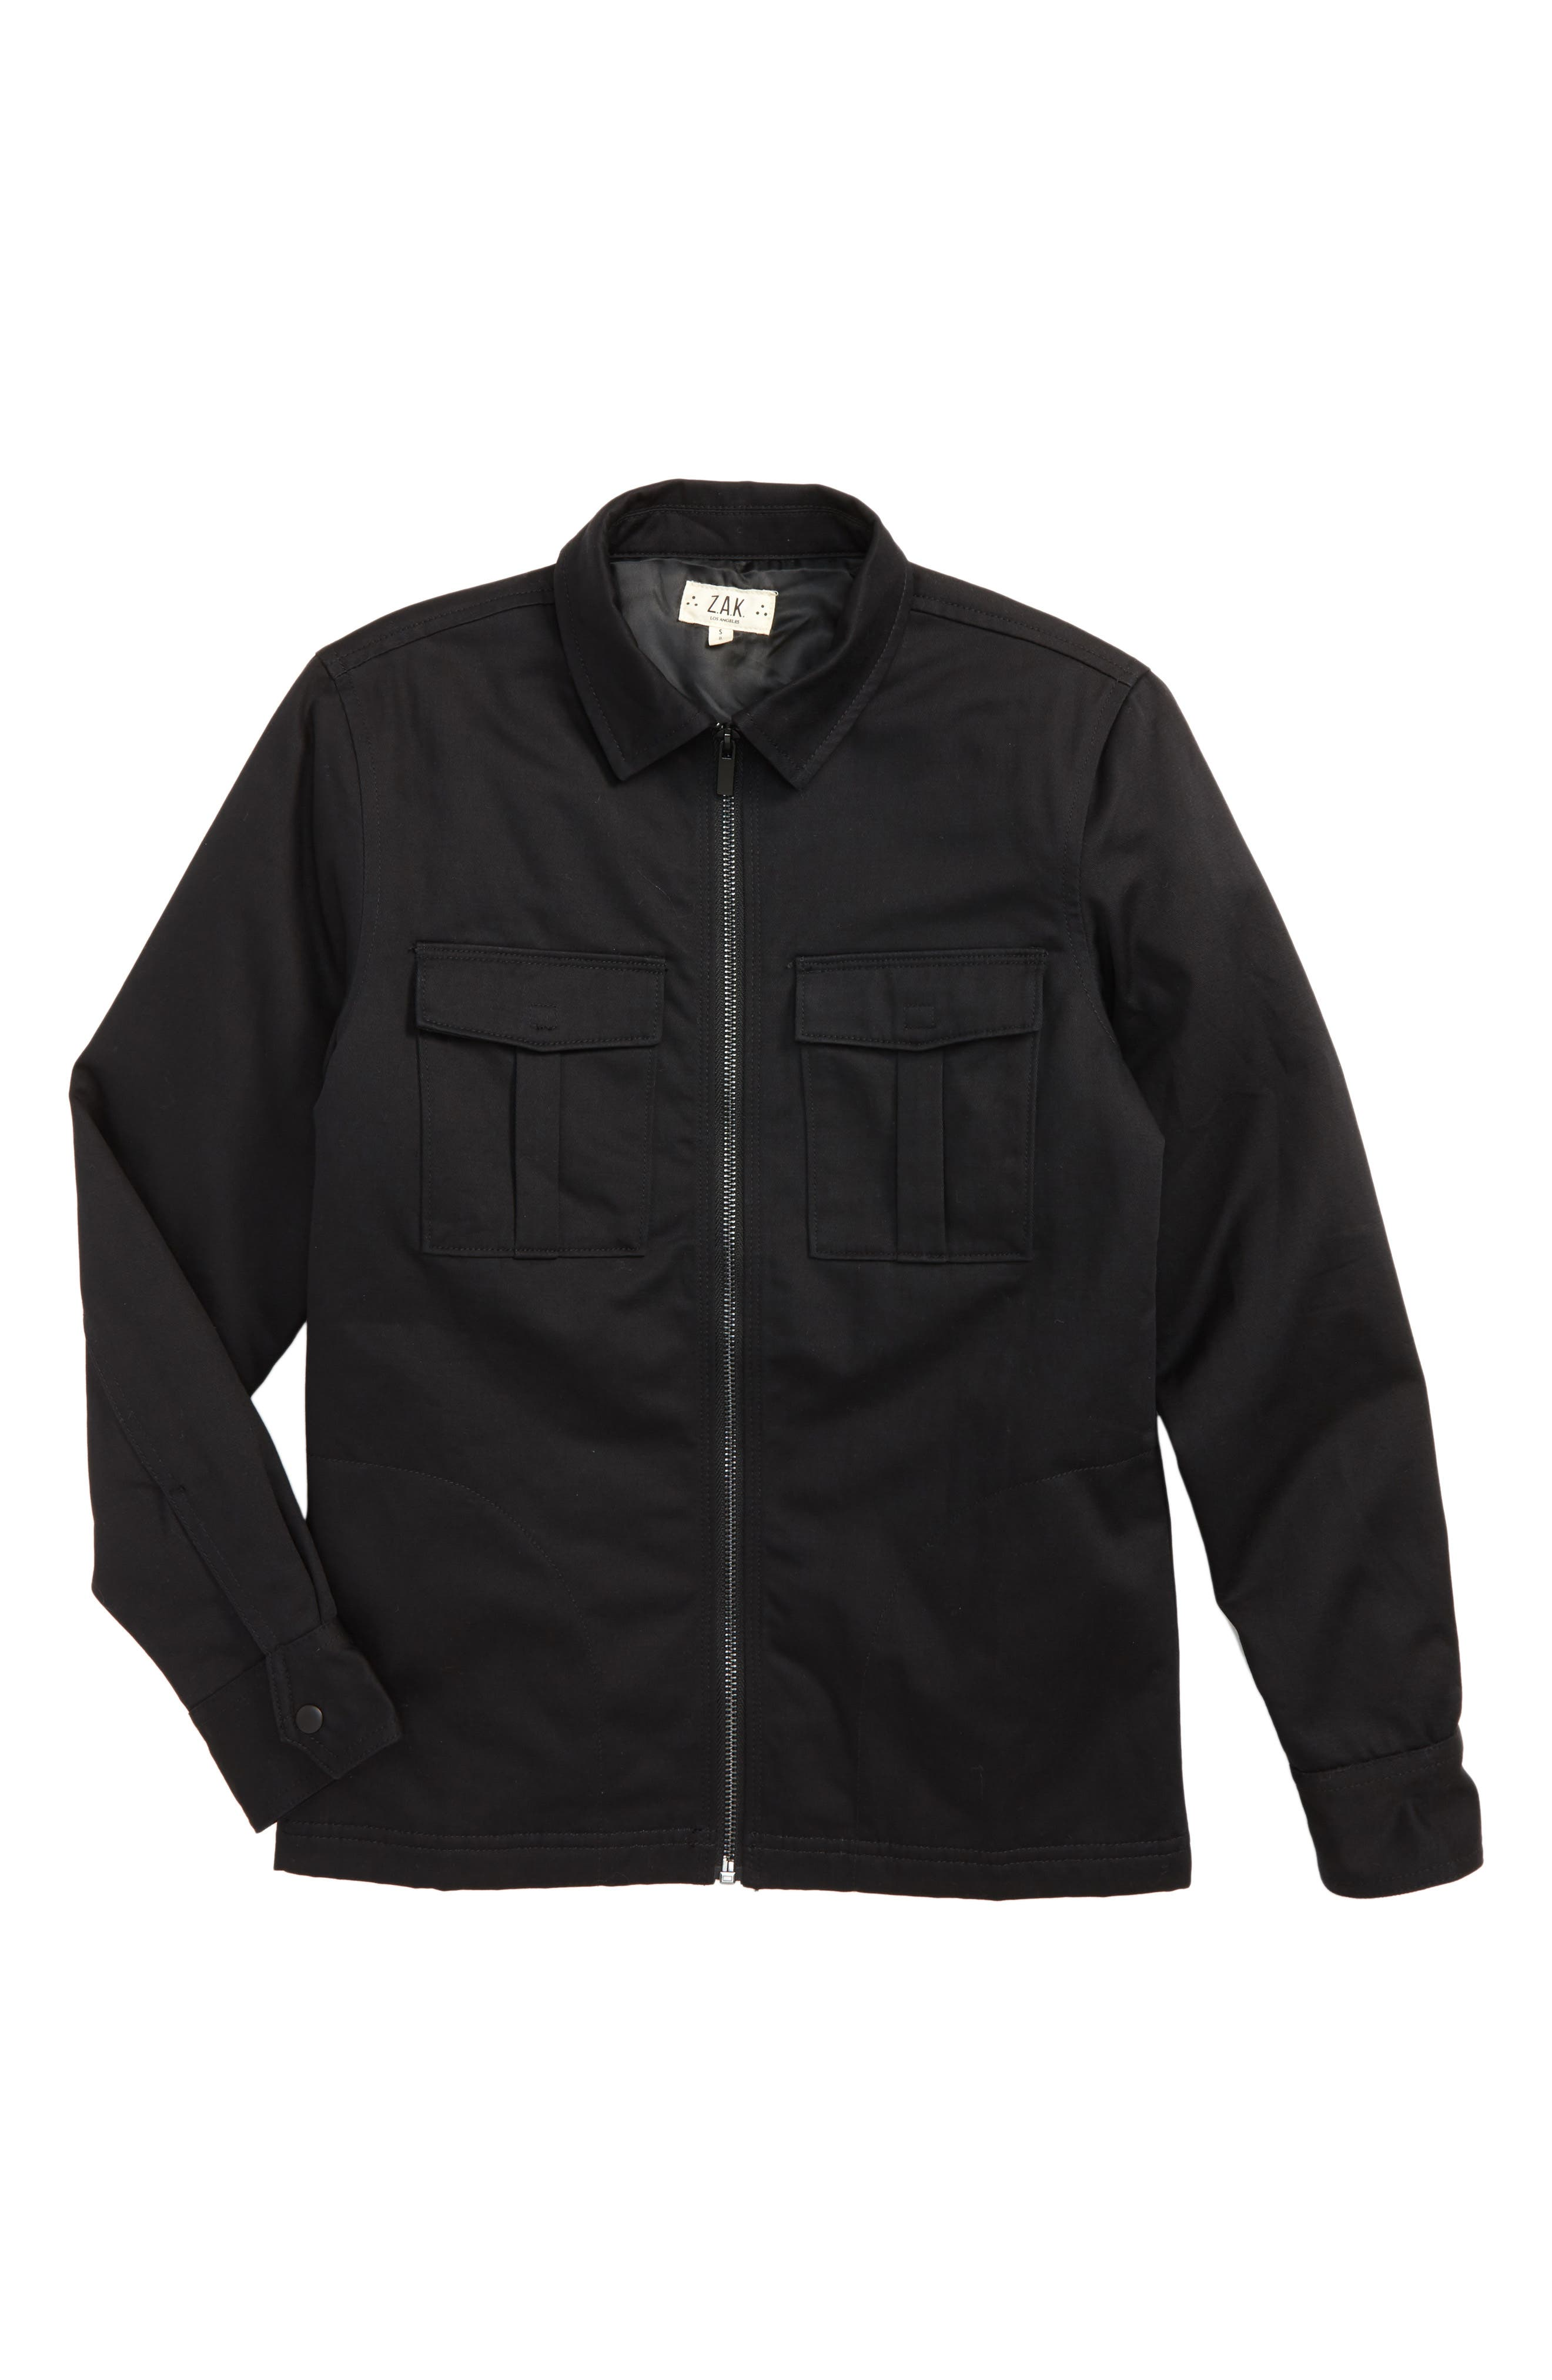 Lost Angeles Jacket,                         Main,                         color, Black